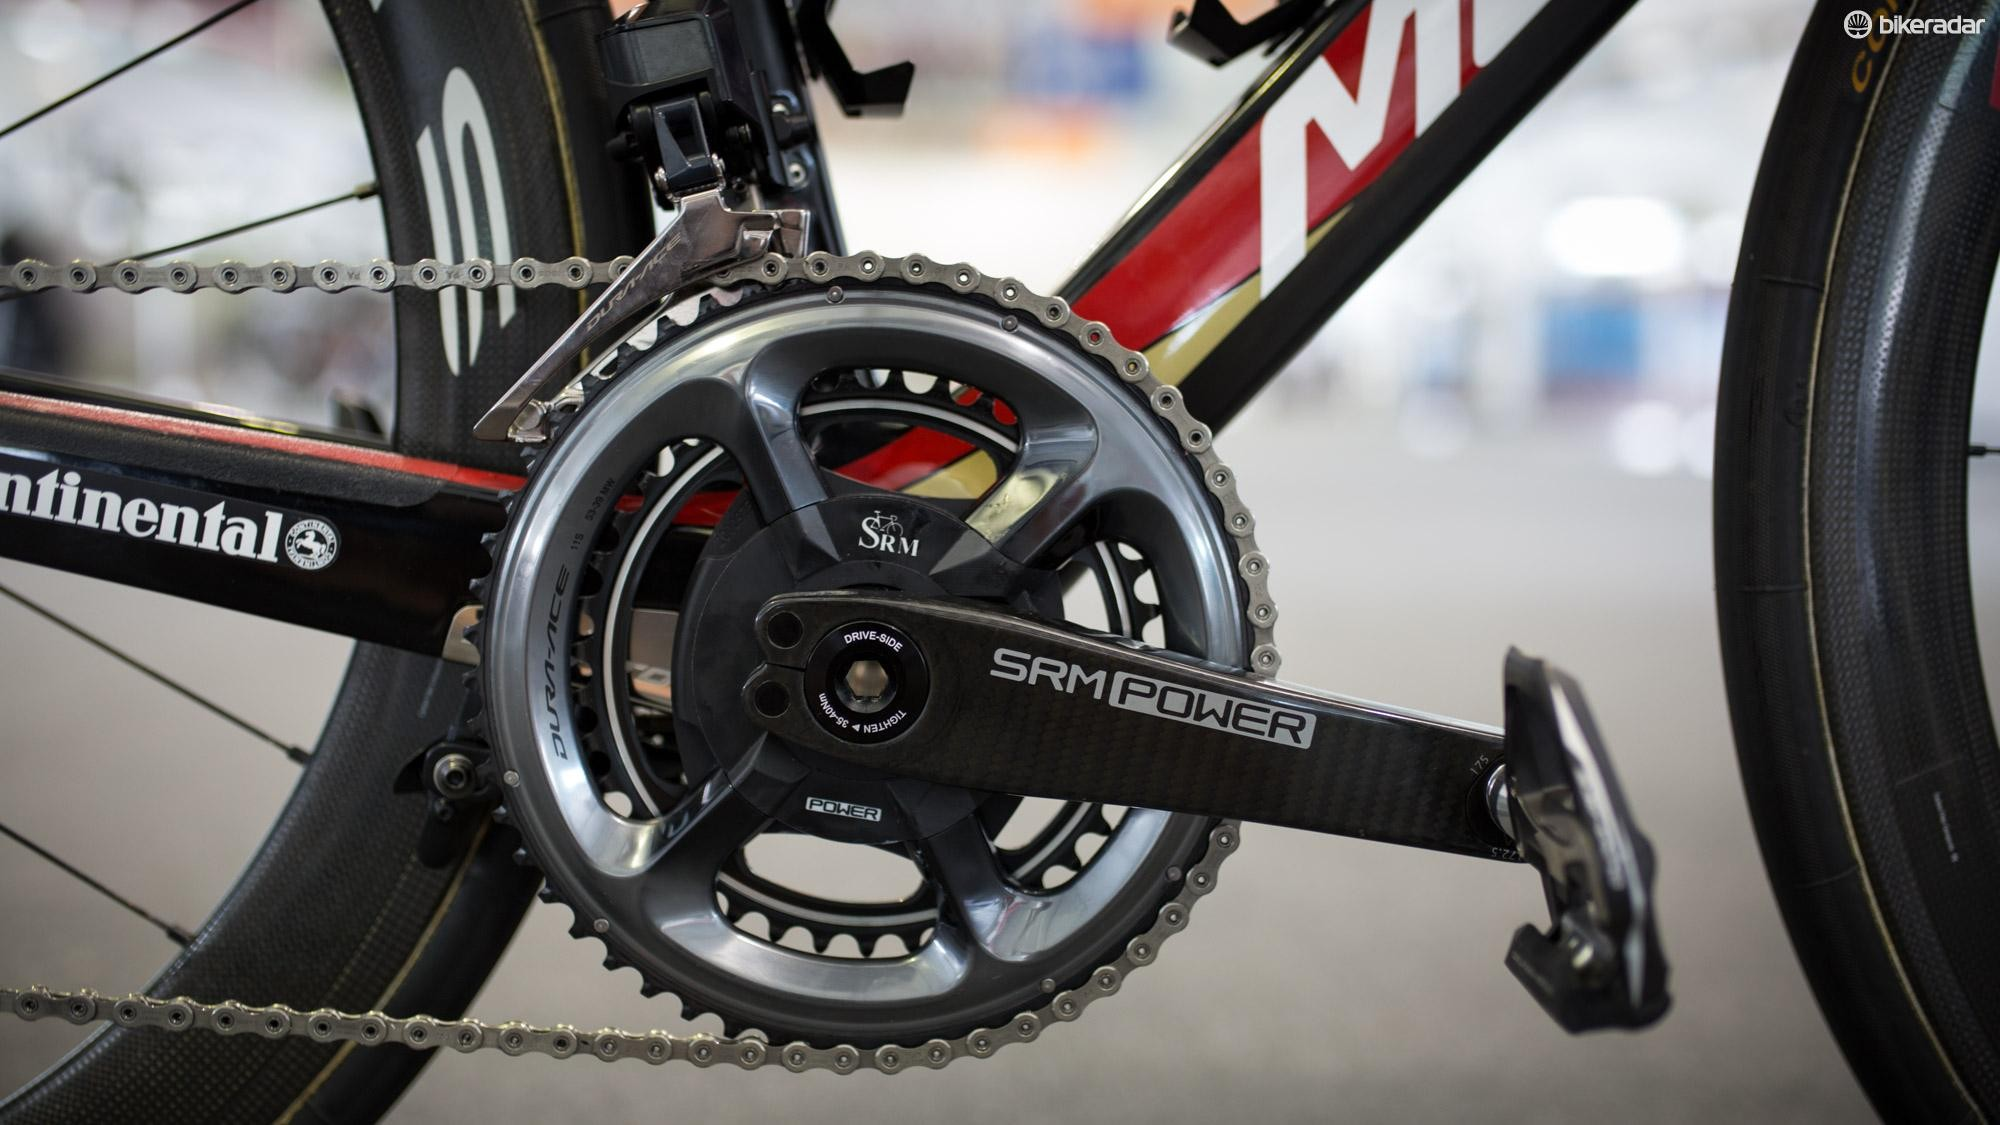 Bahrain Merida riders are using blinged out SRM Origin power meters for 2018